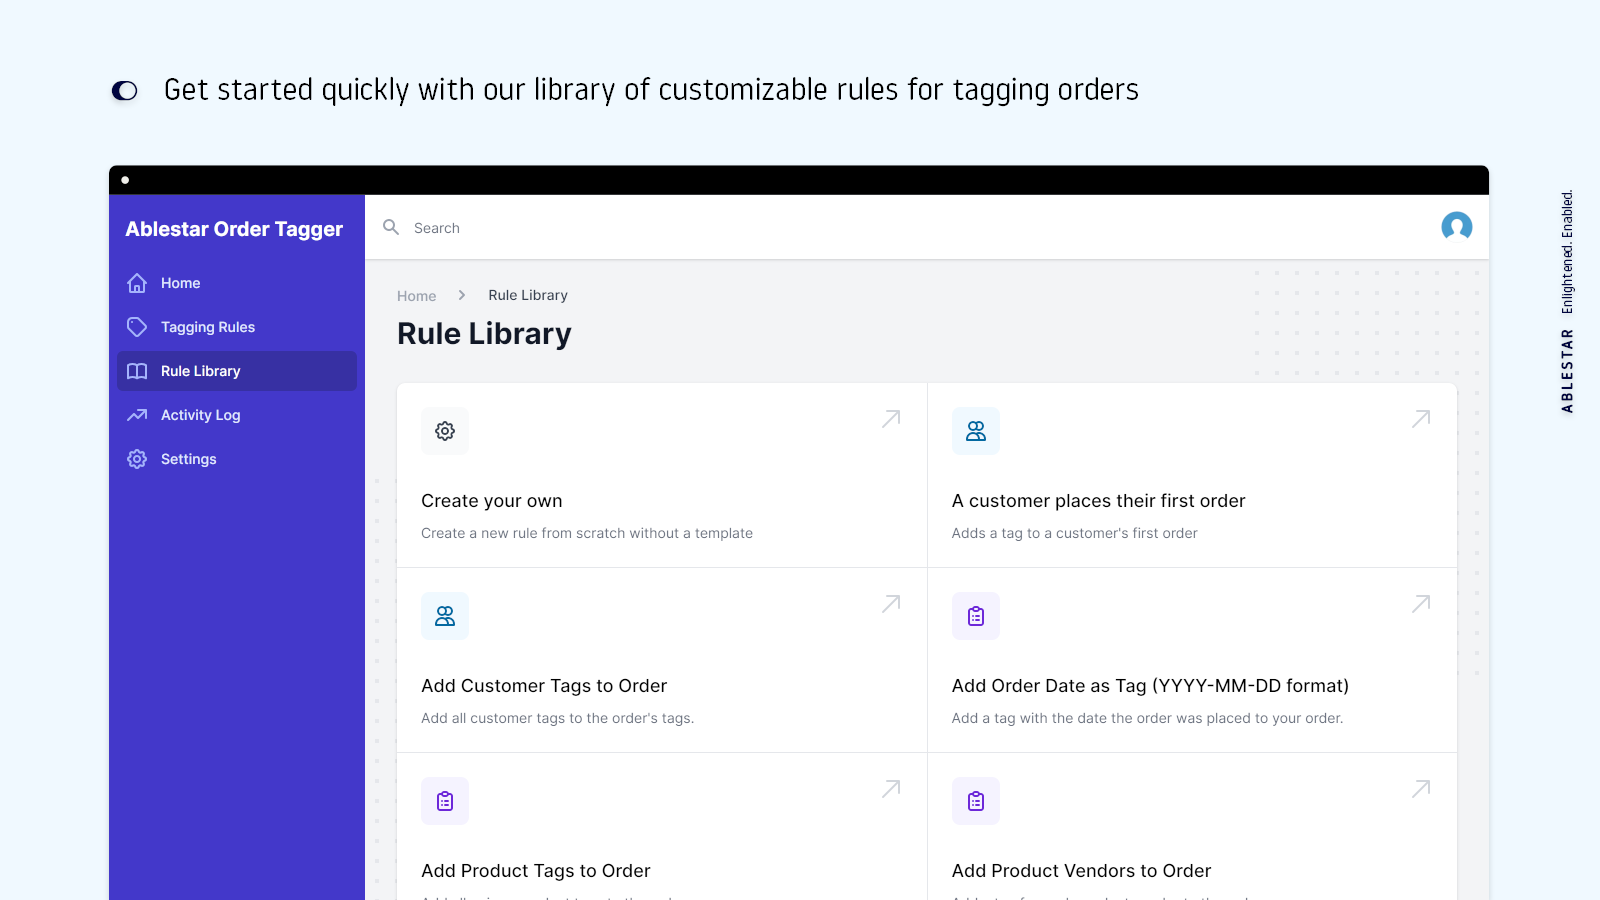 Get started quickly with our library of customizable rules for t